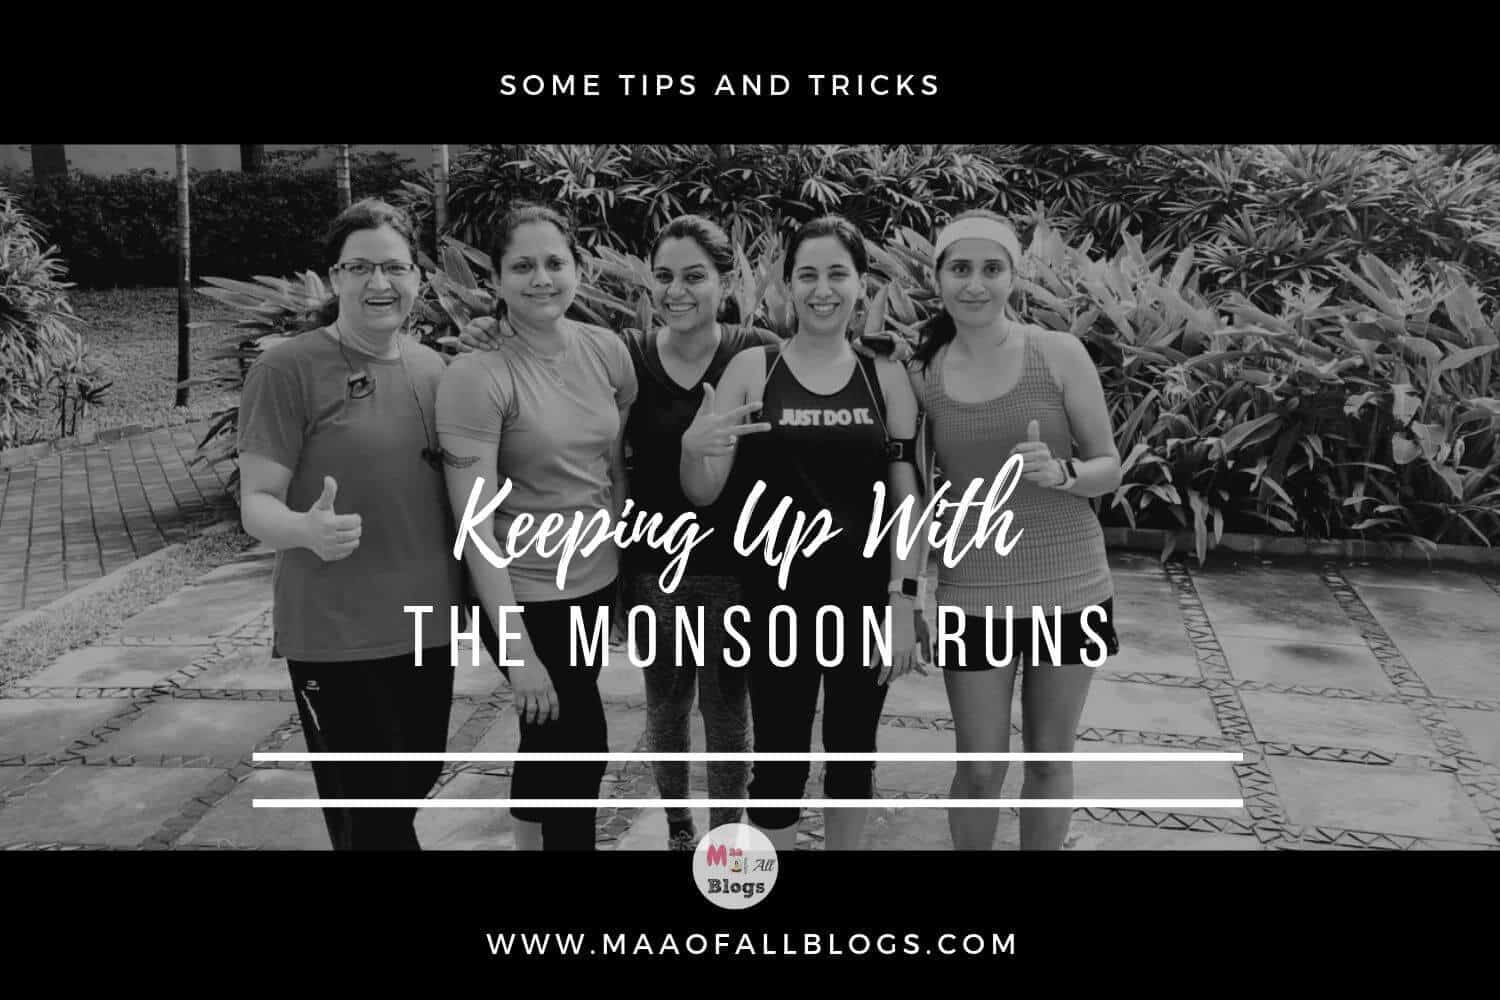 Keeping up with the monsoon runs some tips and tricks